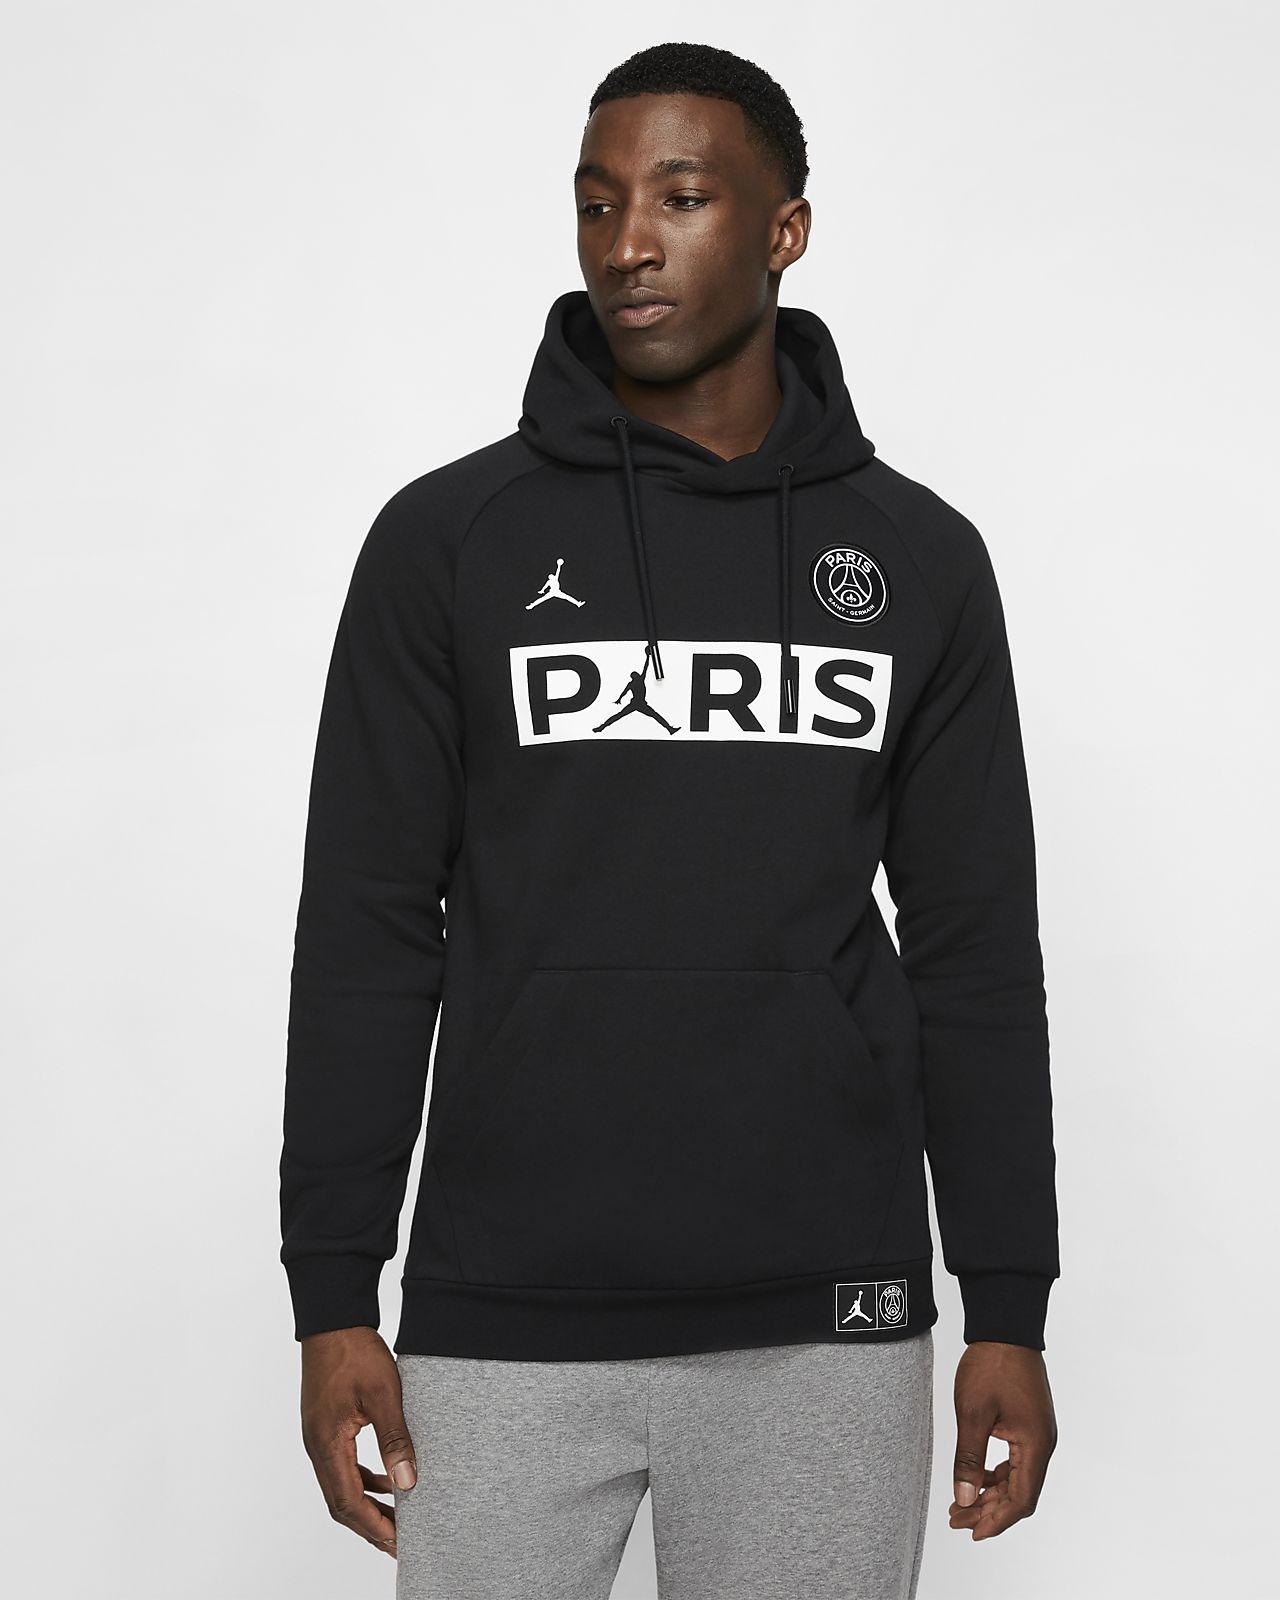 Hoodie Saint Pullover Paris Men's Germain Fleece QxordCWBeE